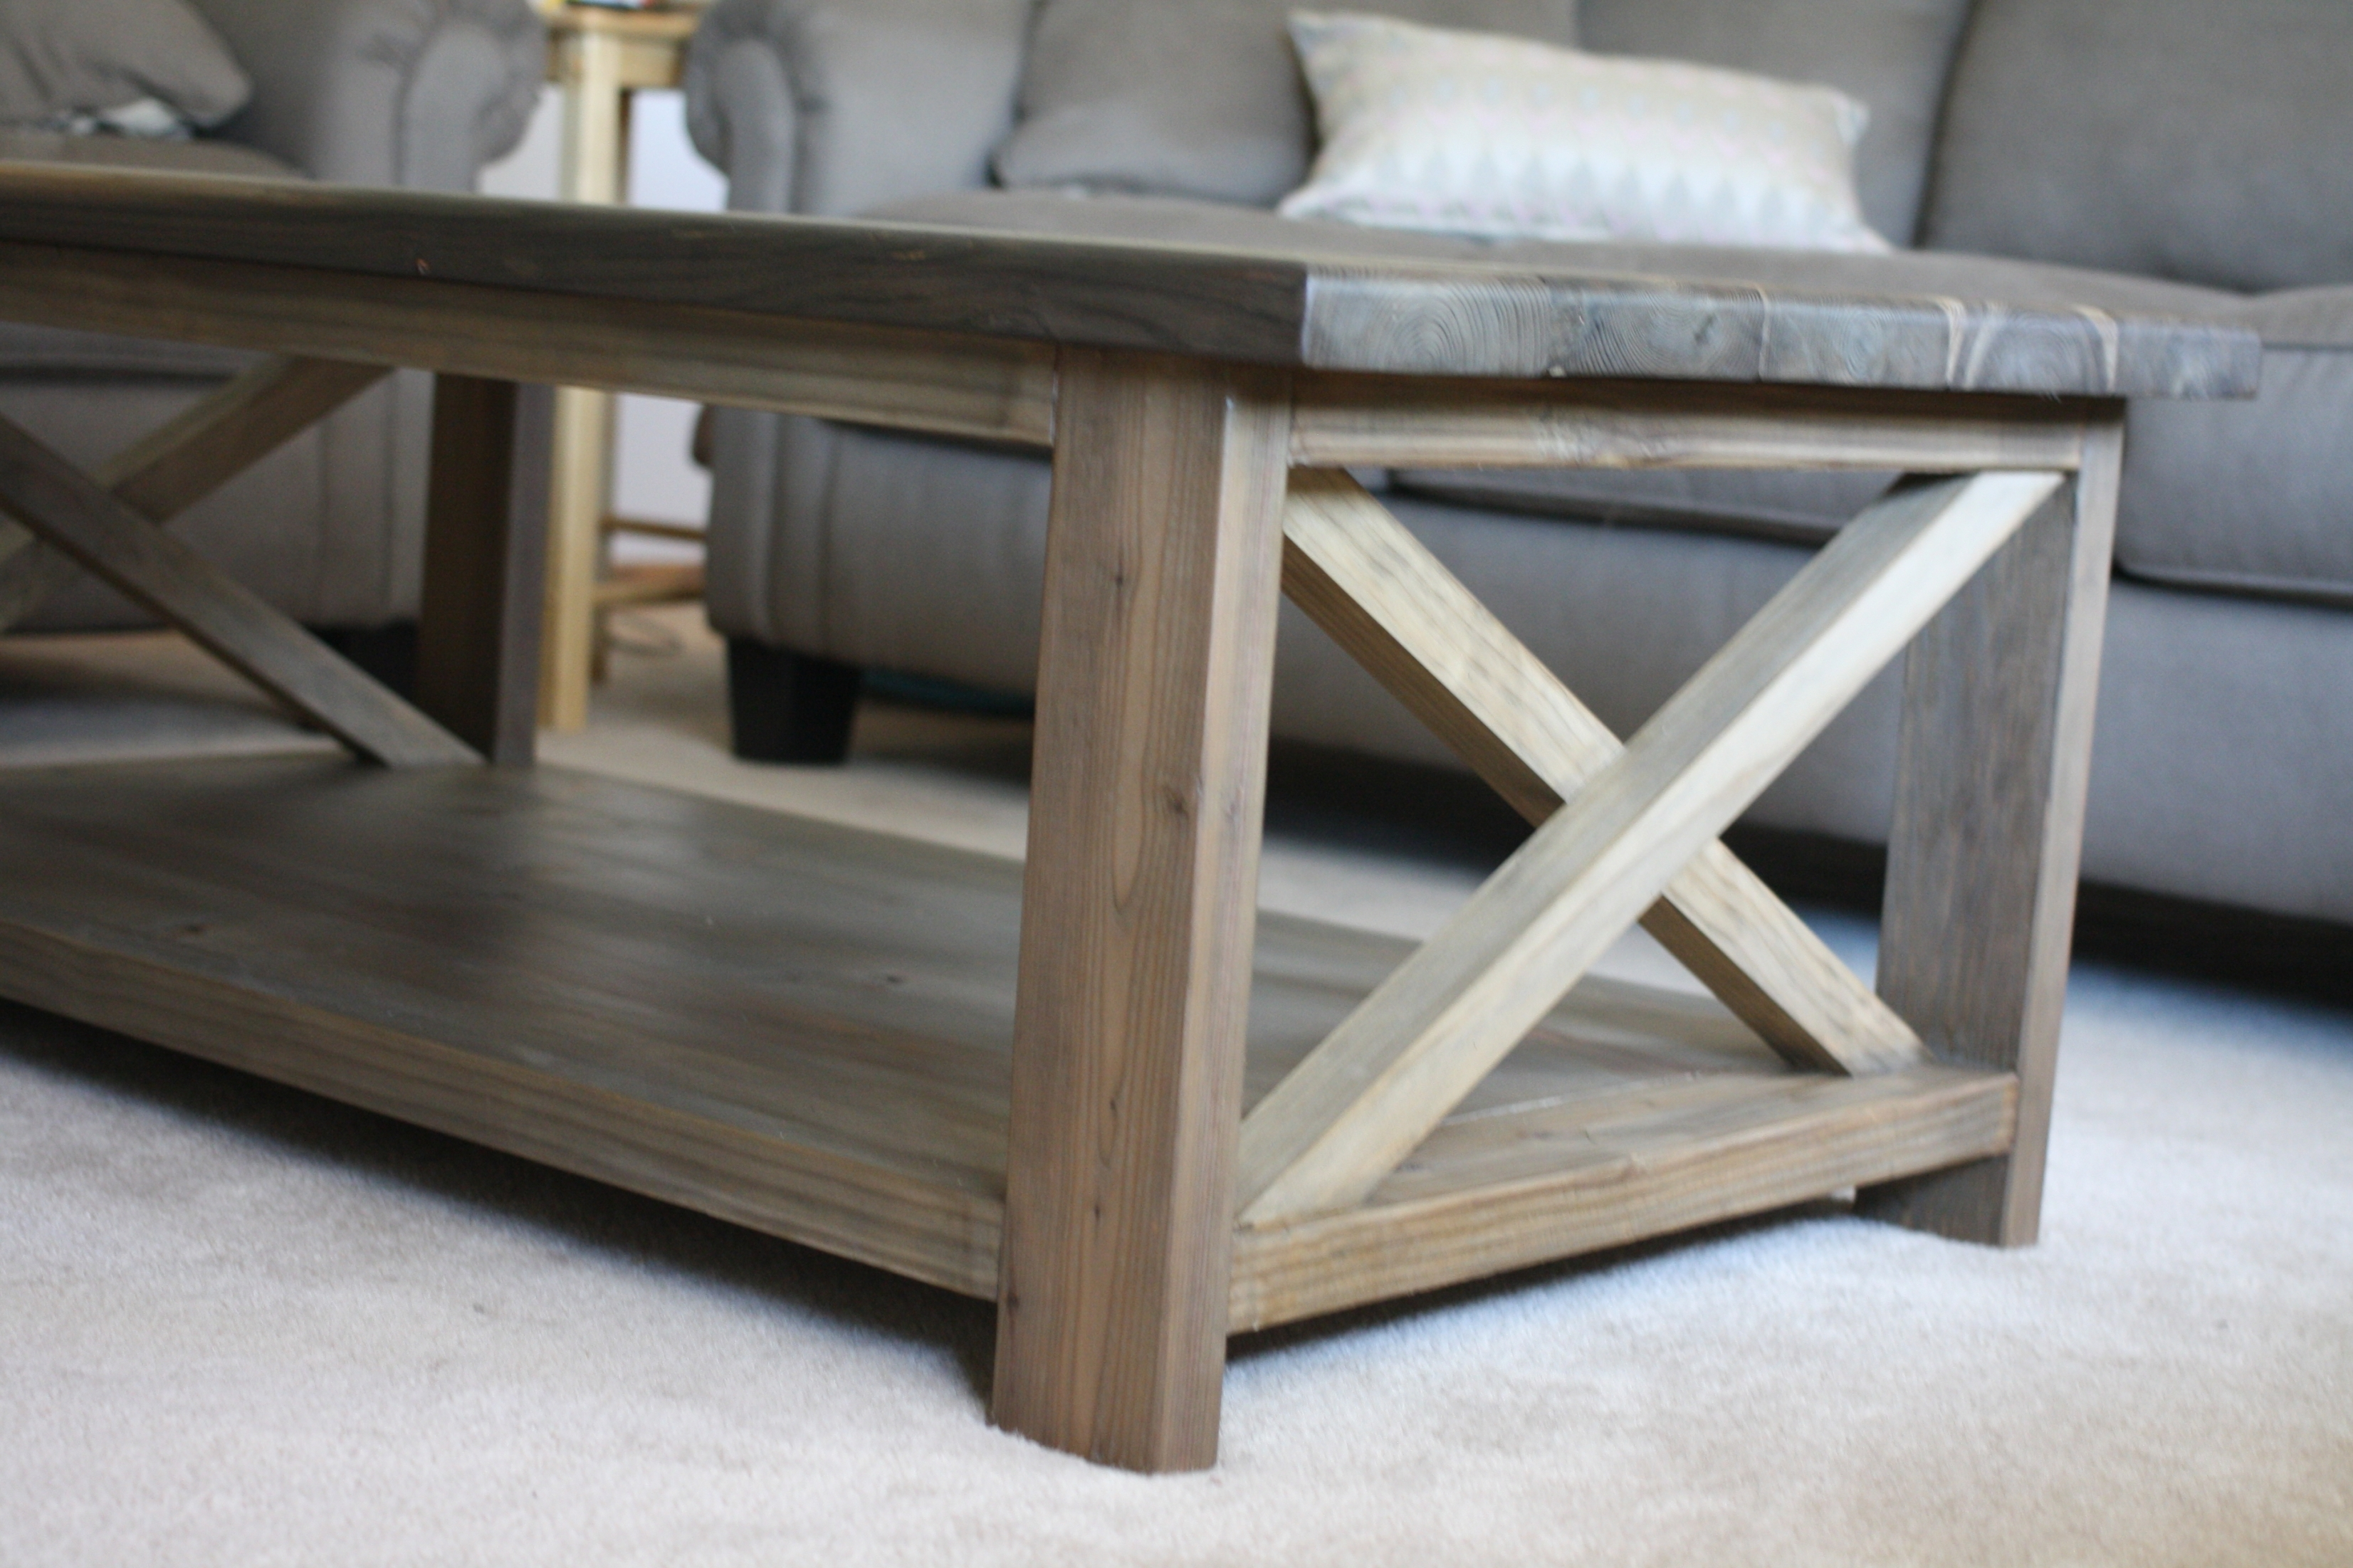 Home Design Ideas Terrific Modern Rustic Coffee Table Intended For In Most Popular Modern Rustic Coffee Tables (View 4 of 20)